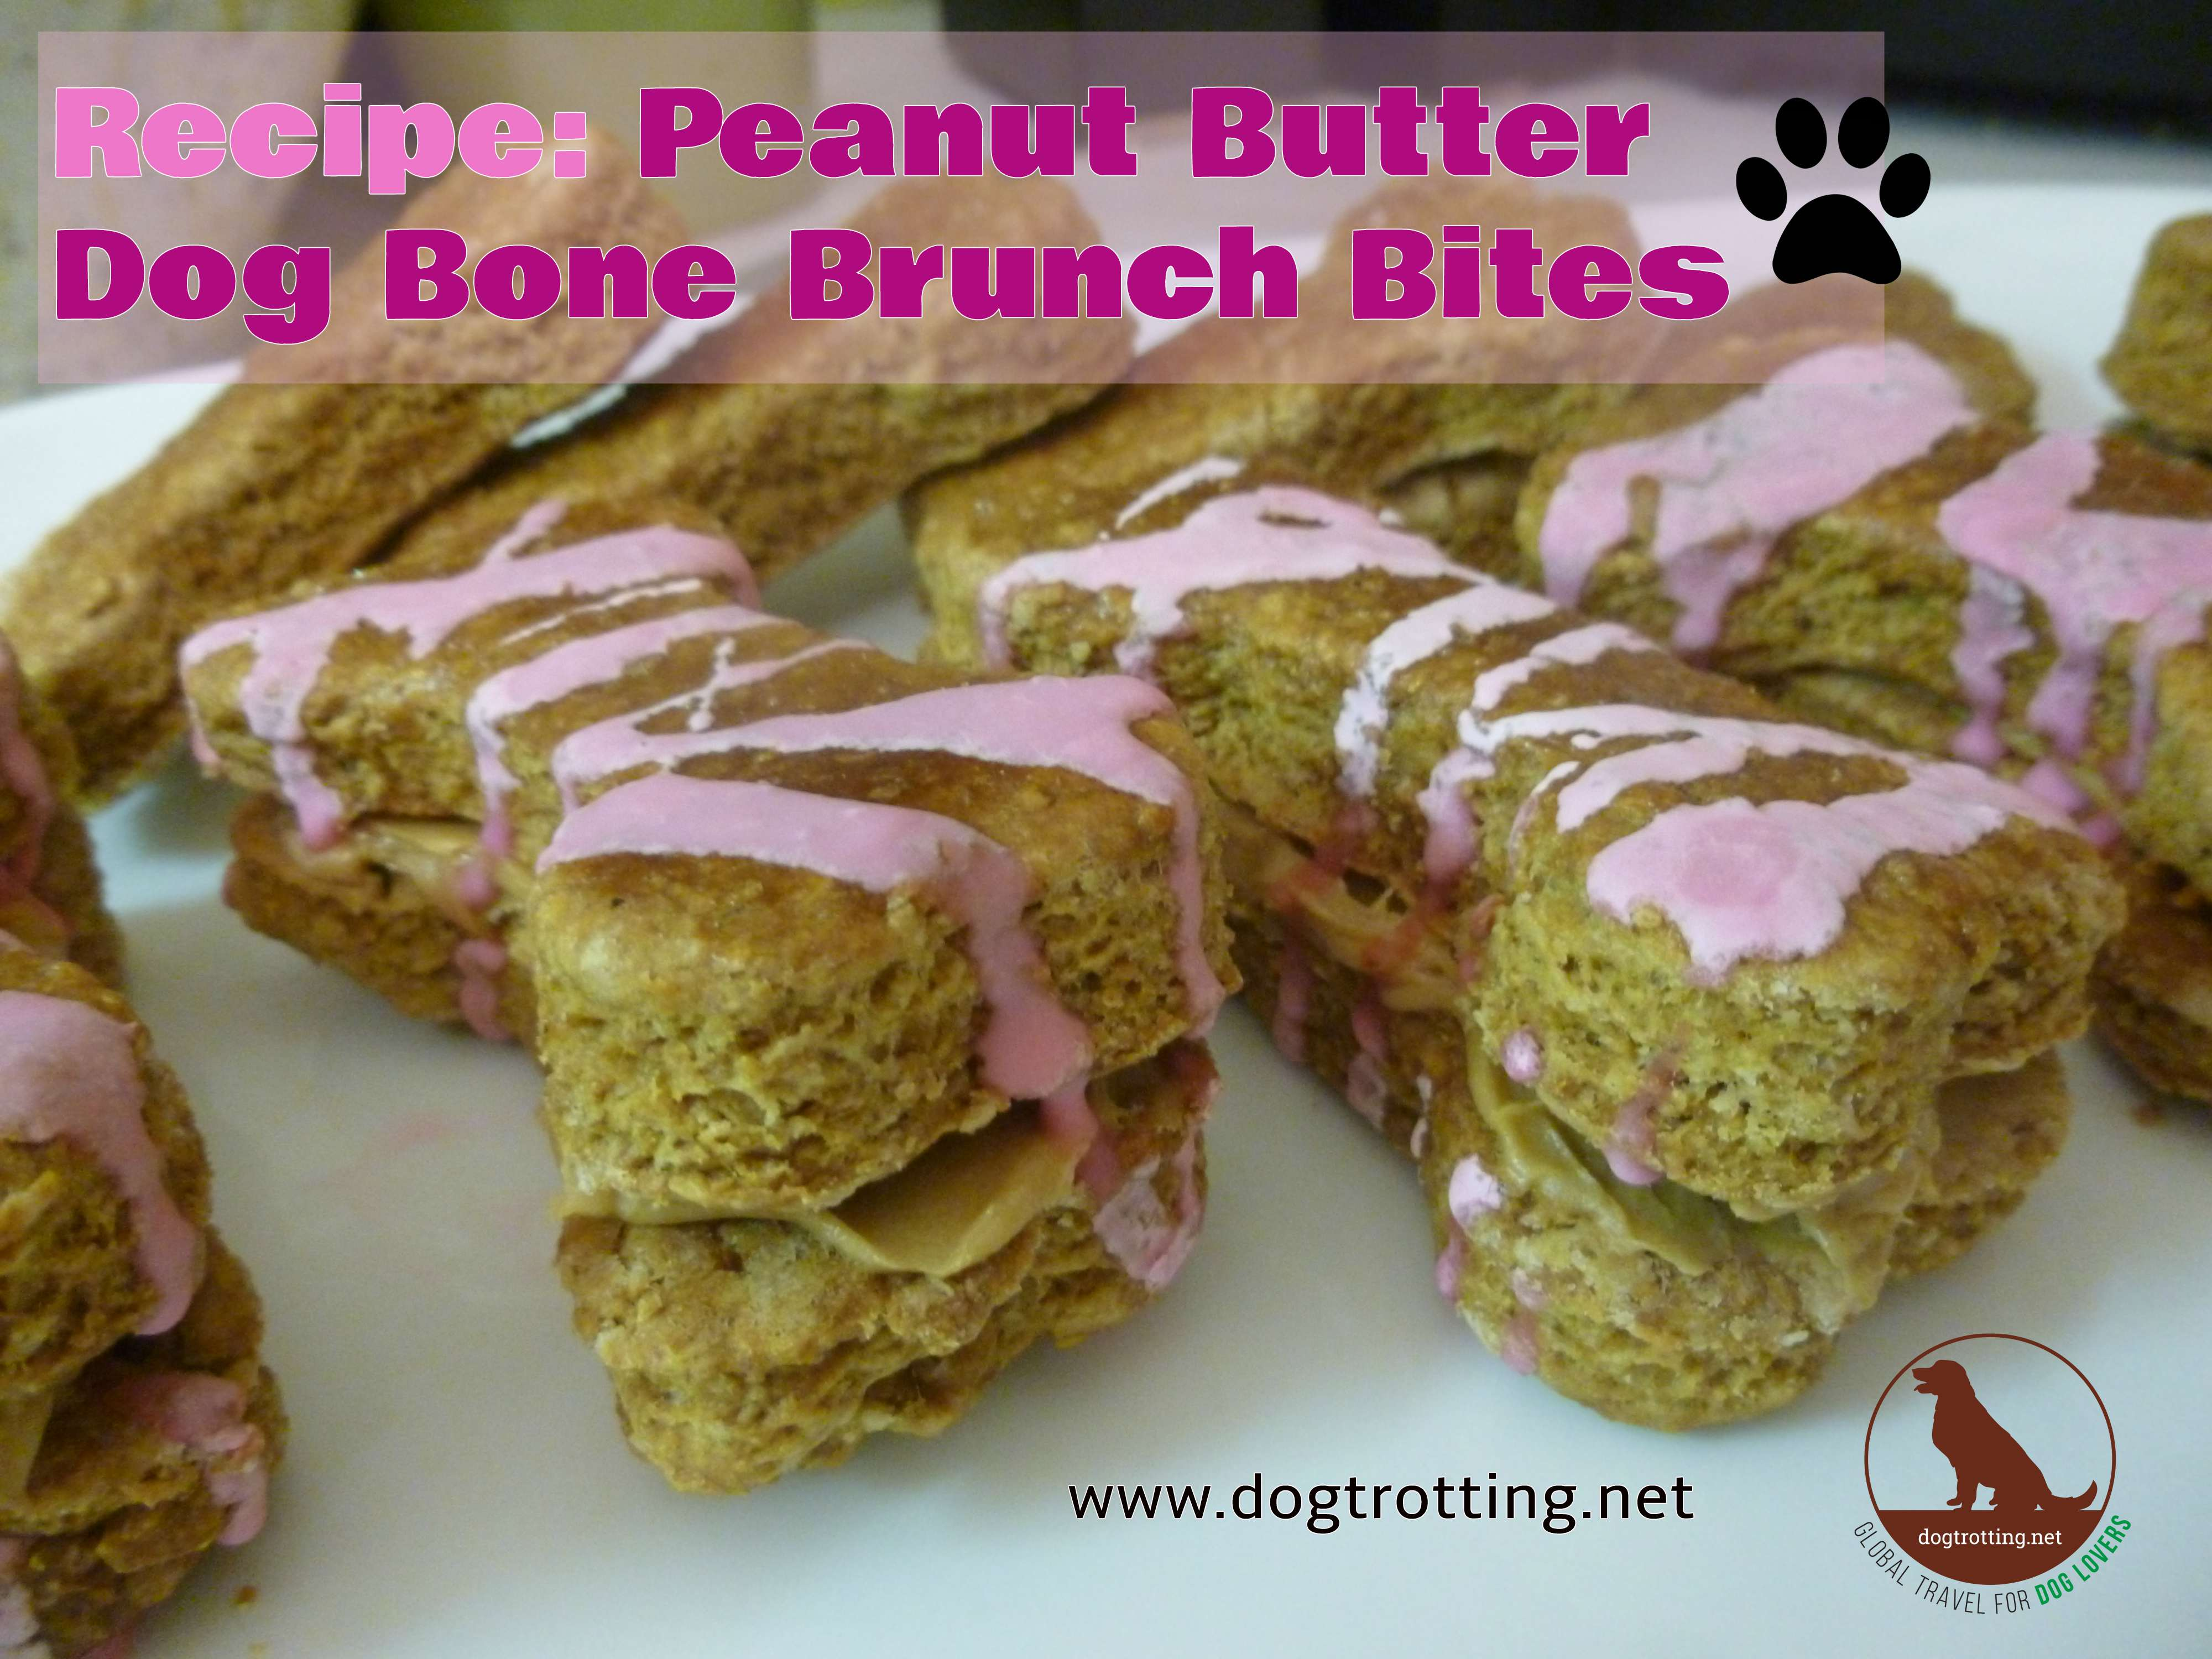 Recipe: Peanut Butter Dog Bone Brunch Bites